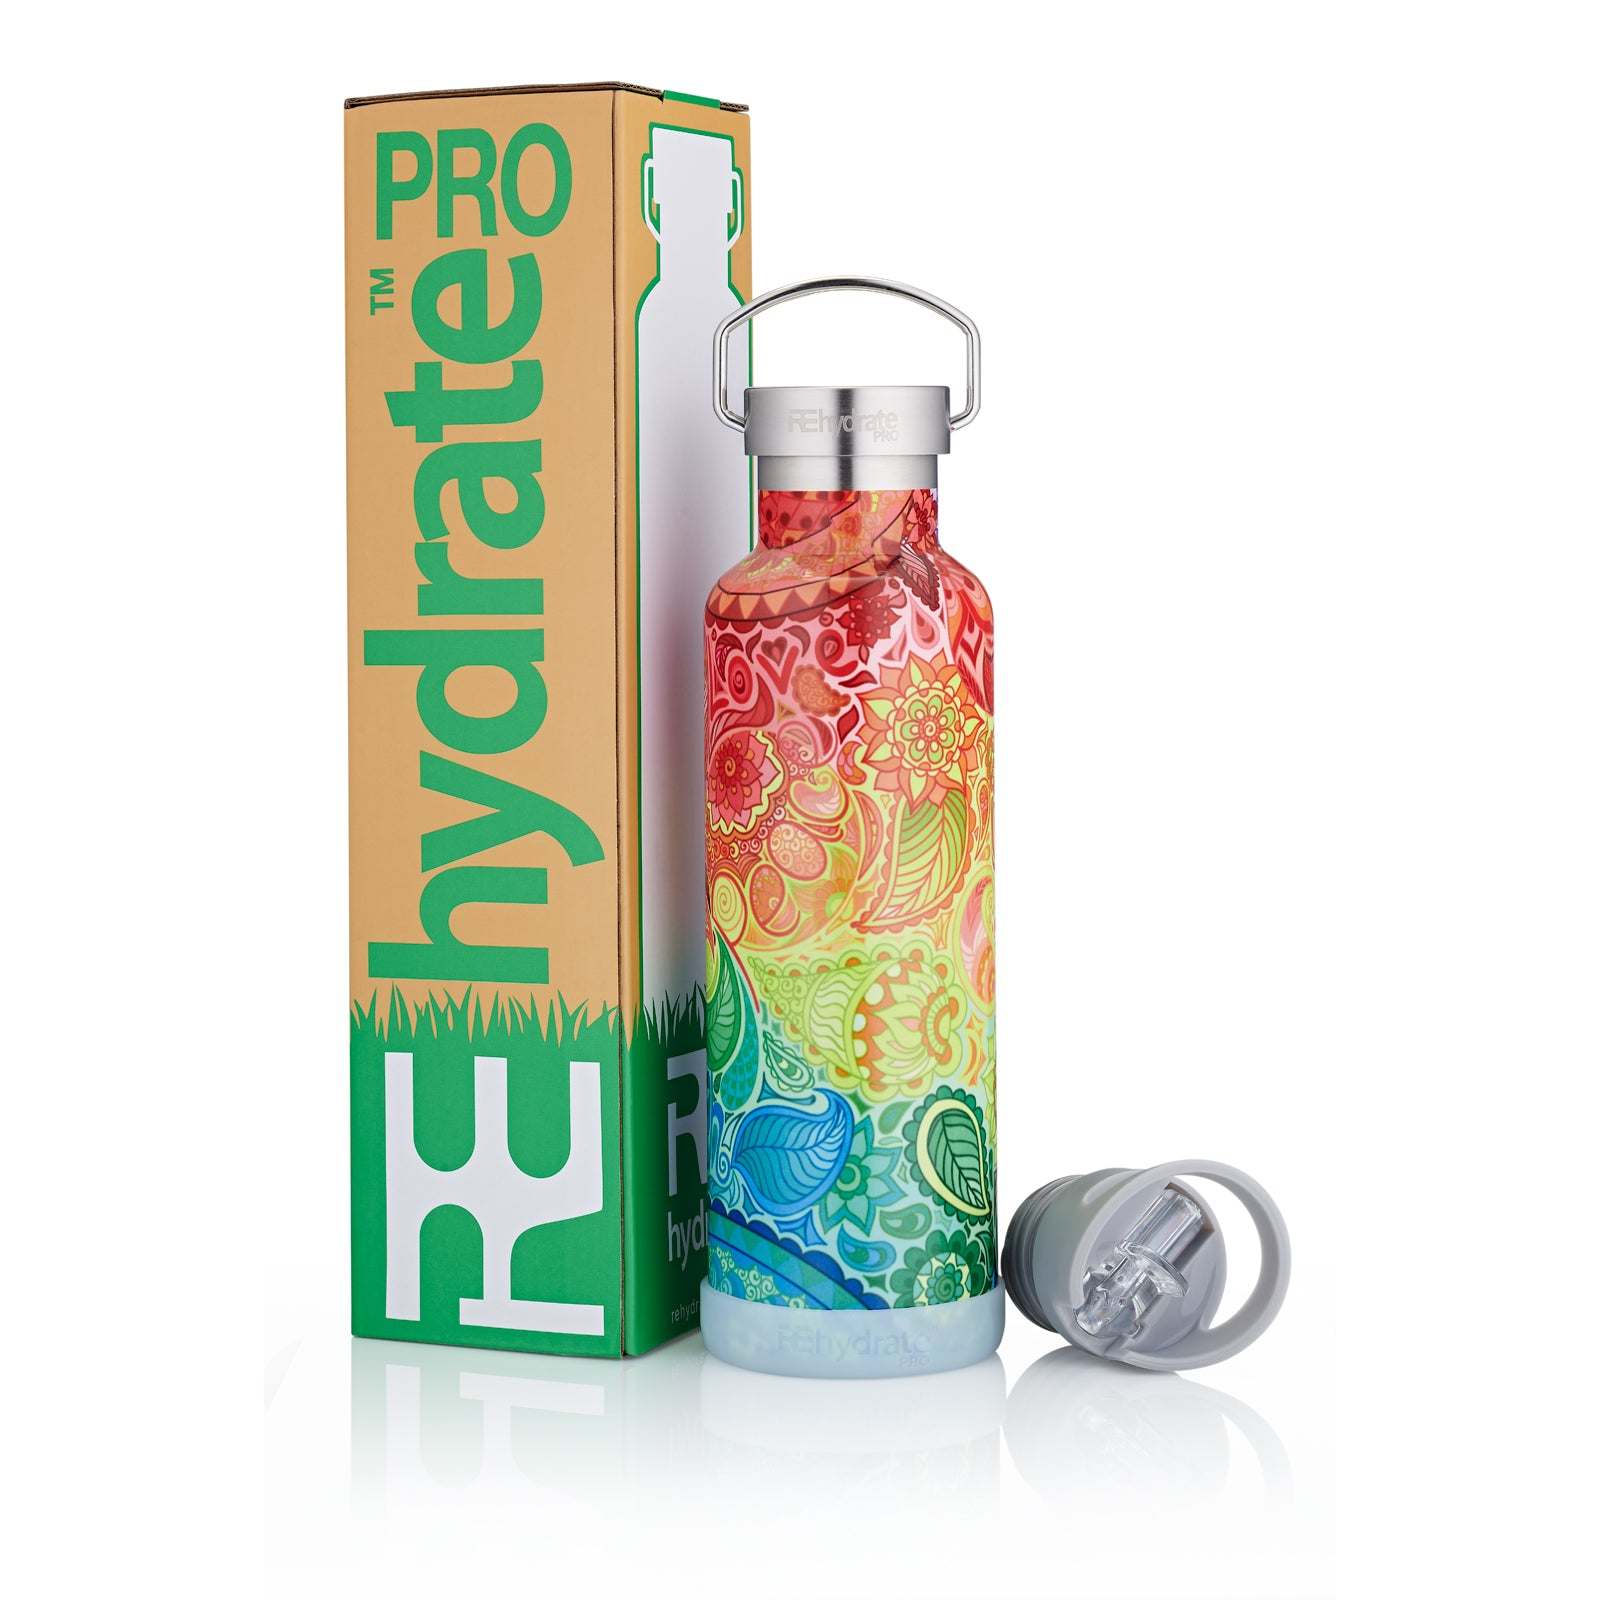 Rehydrate Pro (Zen 25oz) Double-Insulated Stainless Steel Water Bottle - for Hot or Cold Drinks